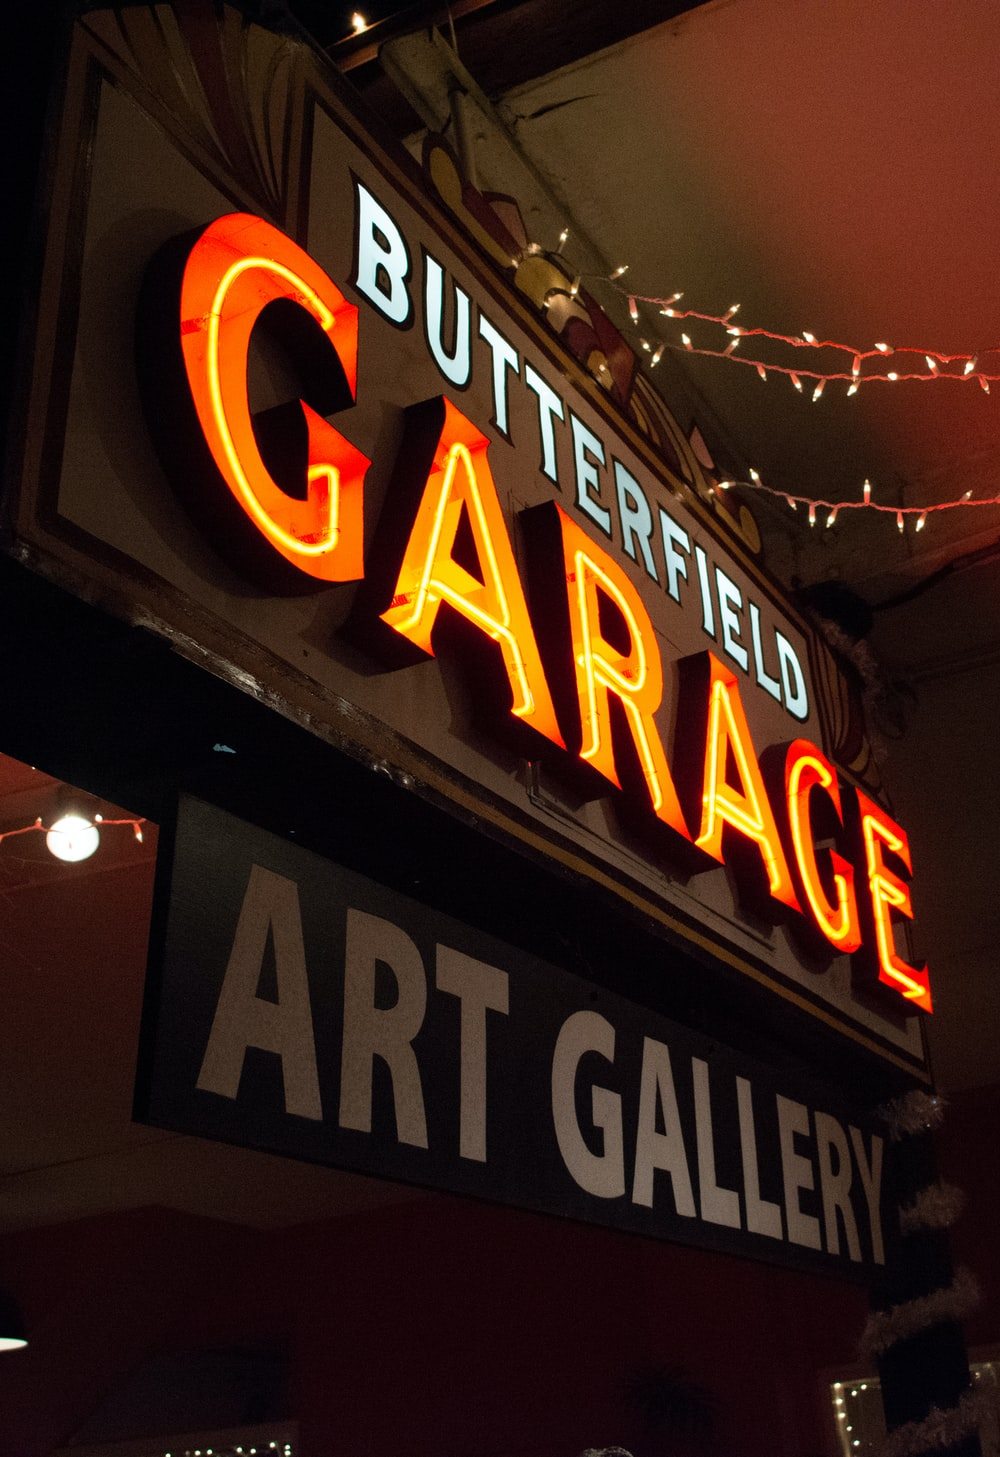 turned-on Butterfield Garage neon sign